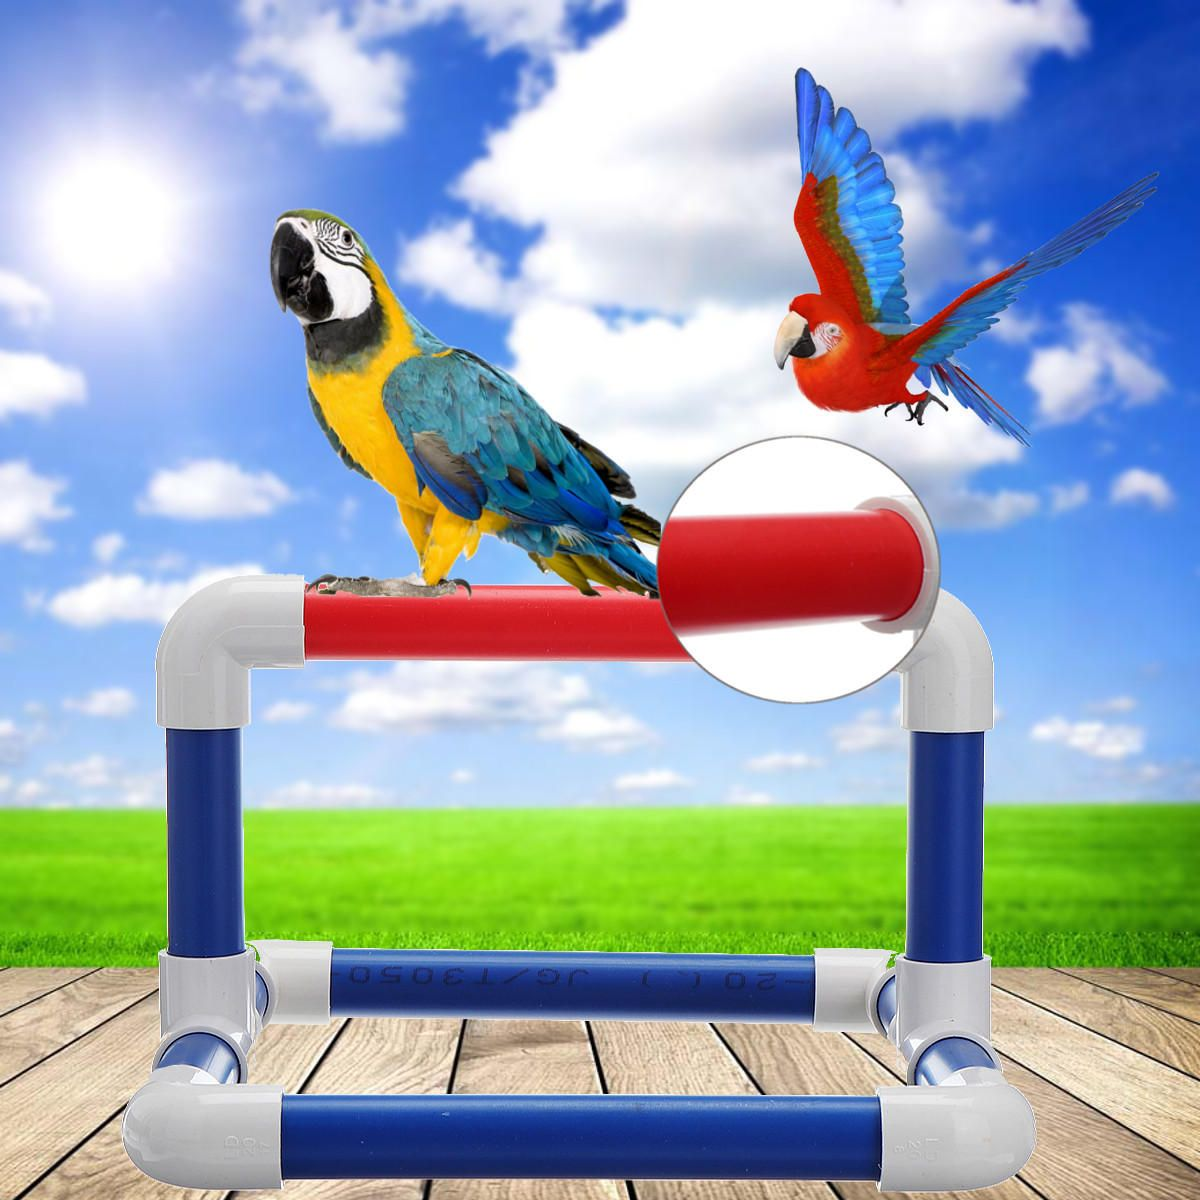 Large Pvc Parrot Perch Play Gym Stand Birds Training Playing Platform Tray Tablet Stand Parrot Perch Bird Stand Play Gym